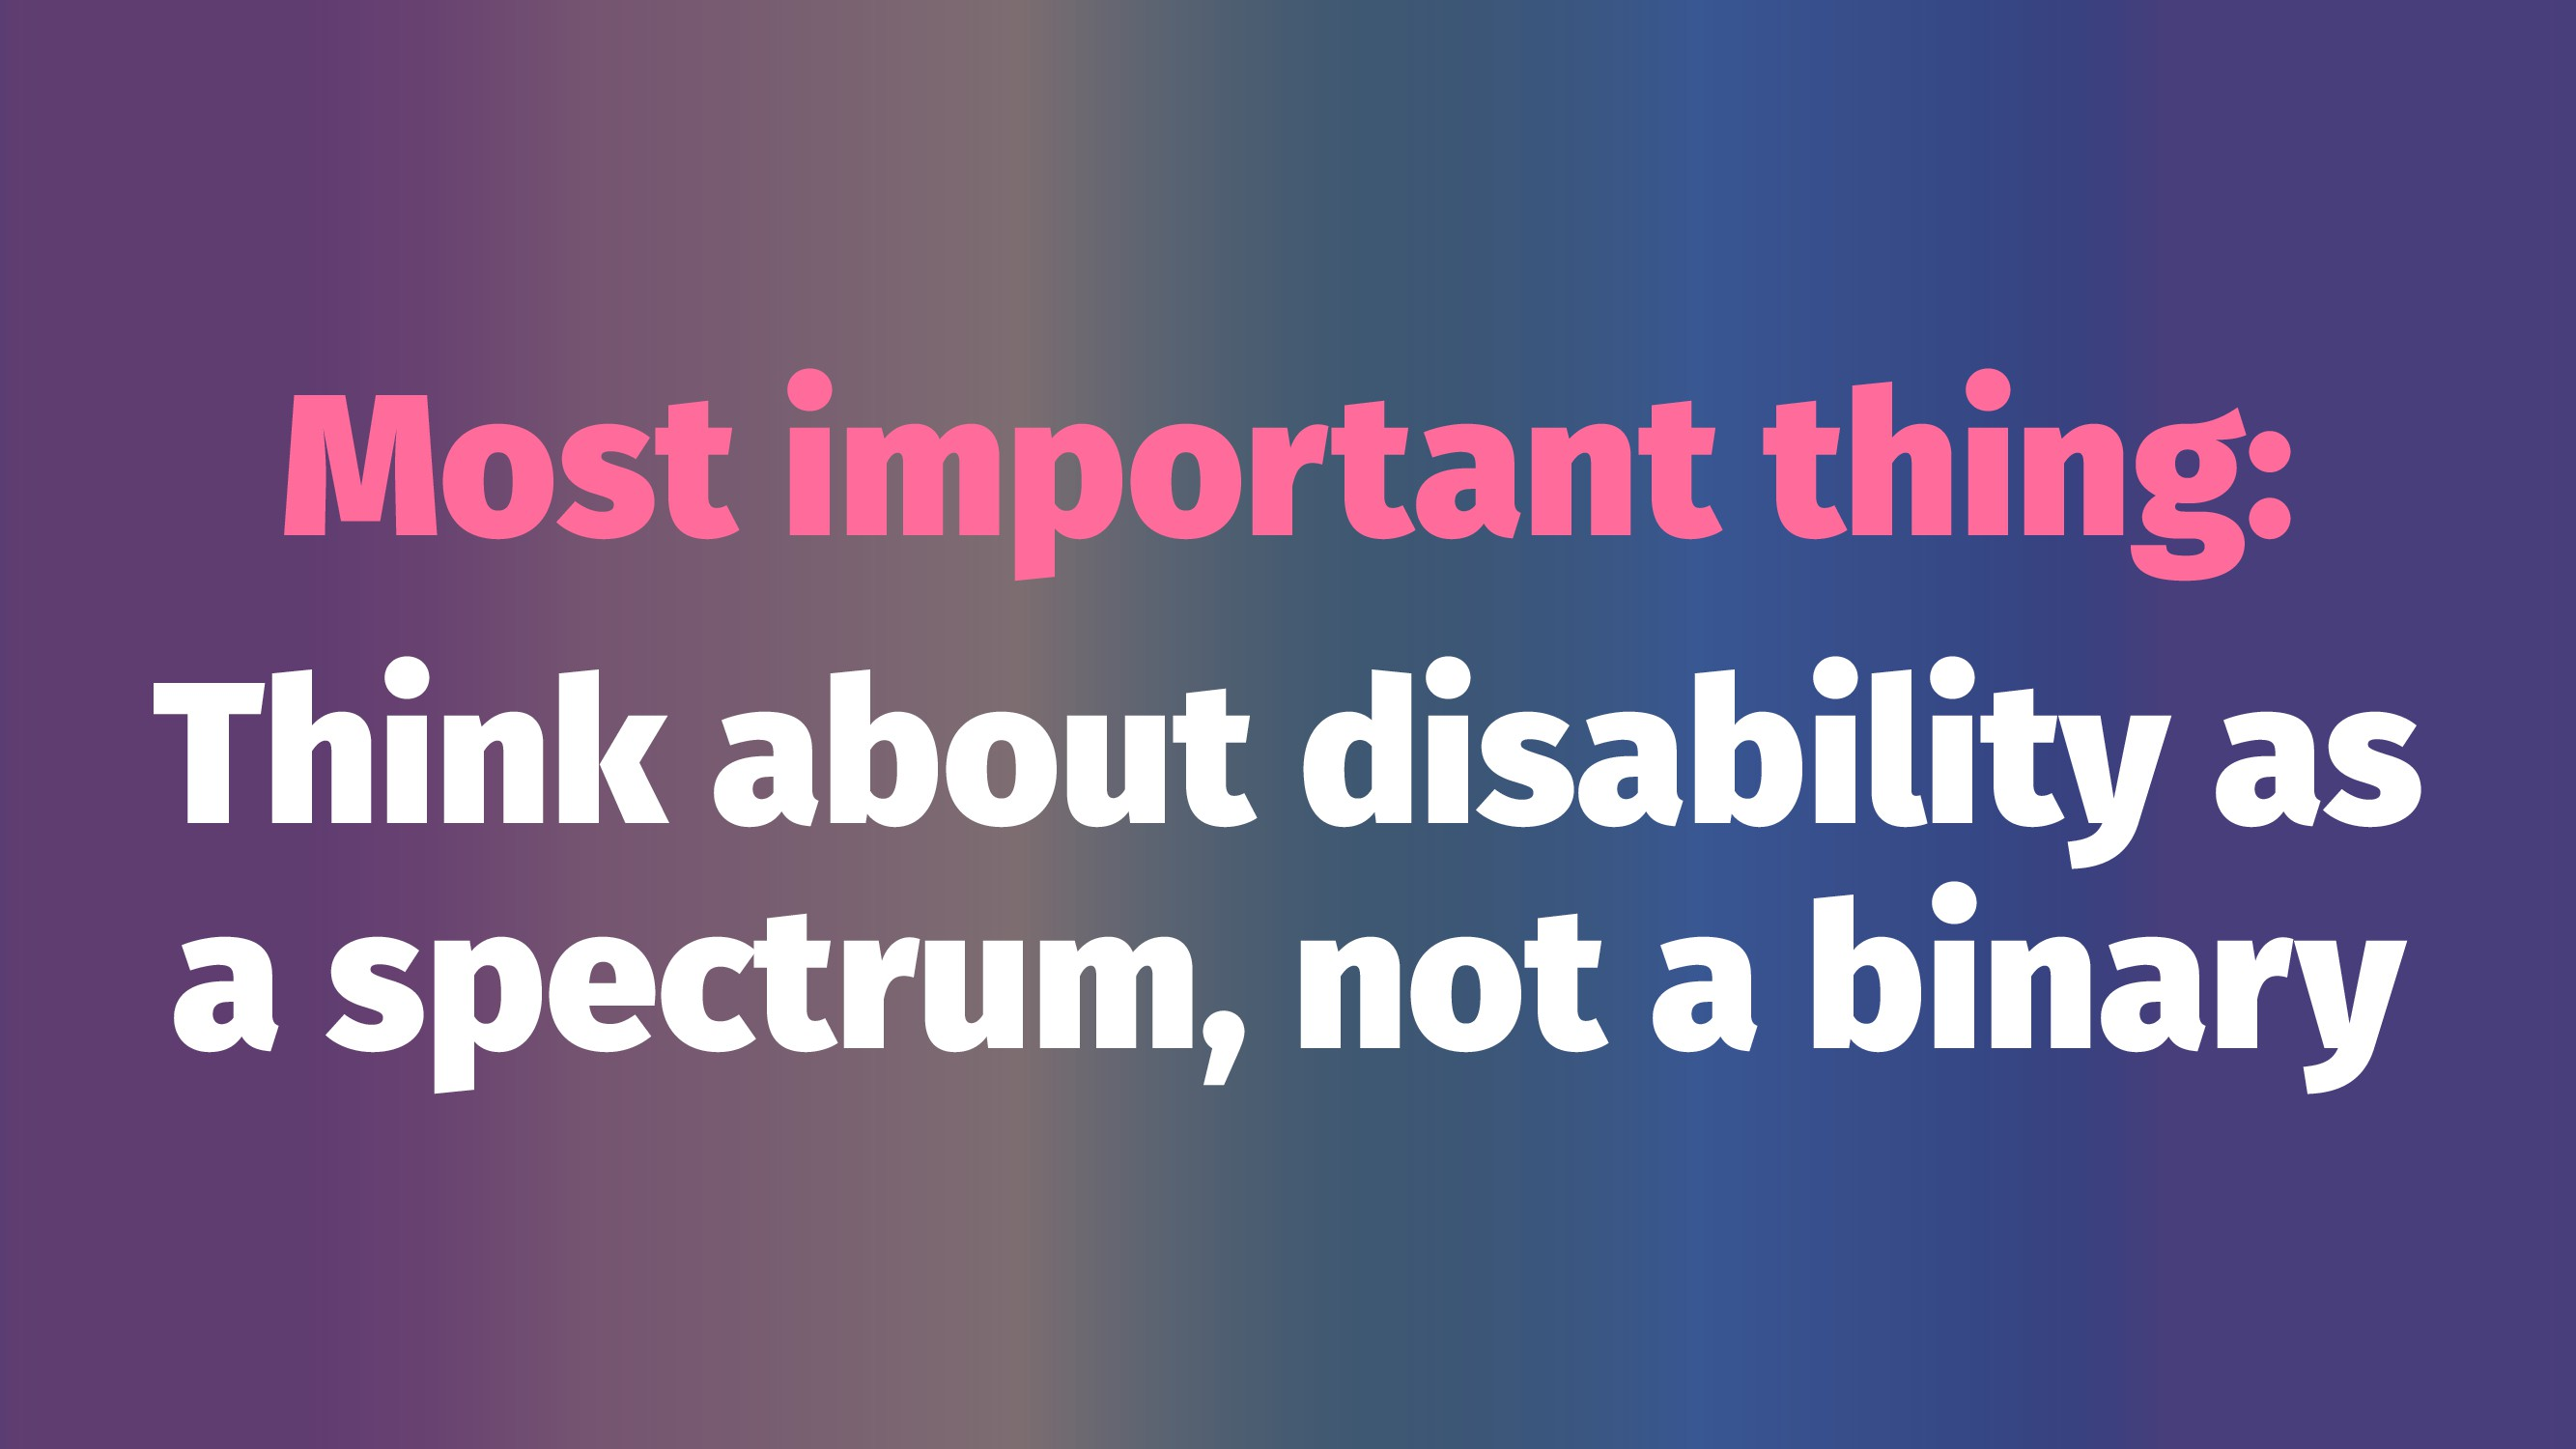 Most important thing: Think about disability as...